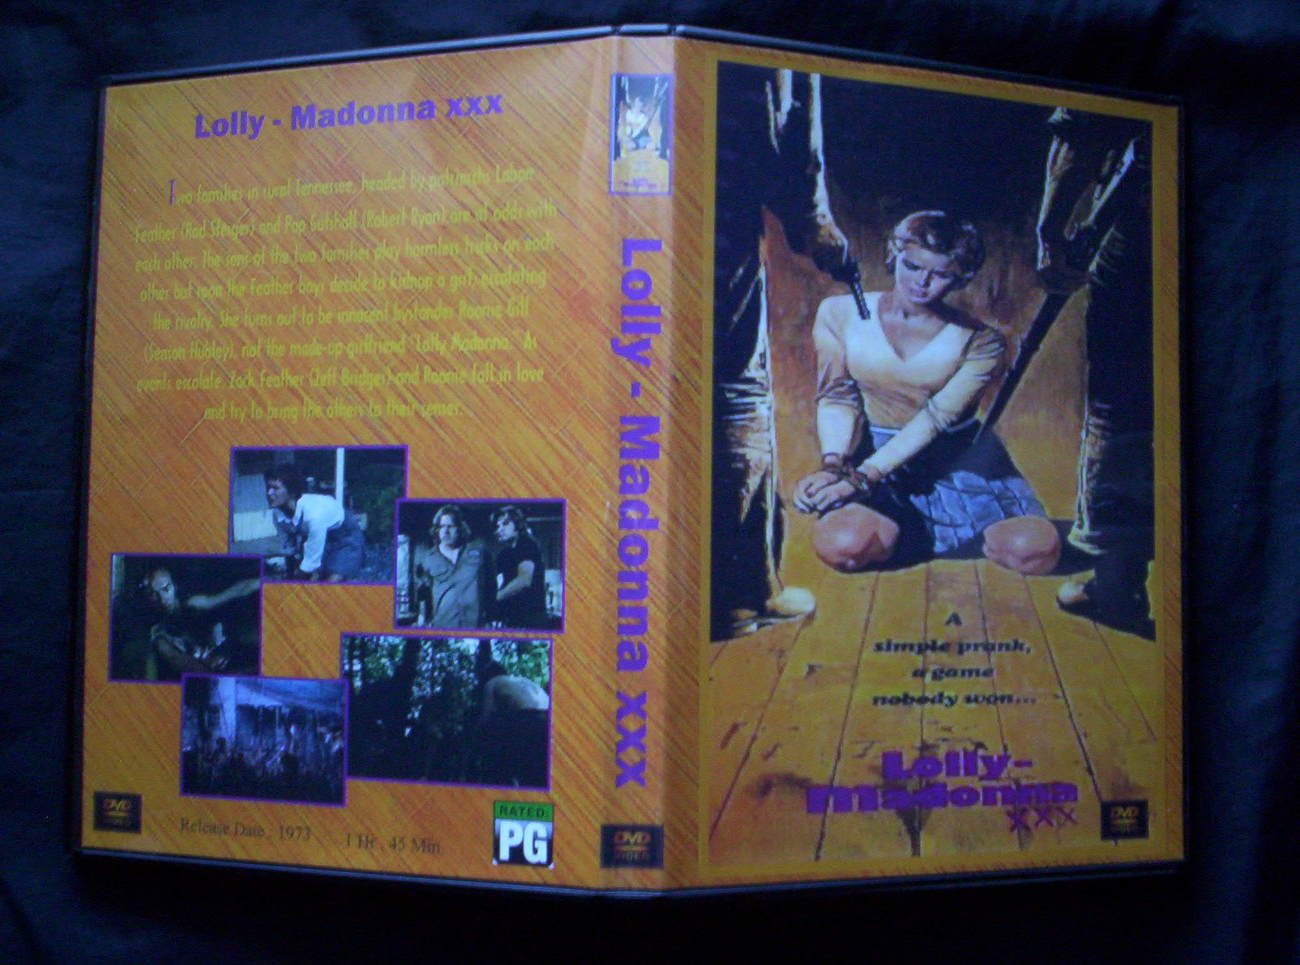 LOLLY MADONNA XXX DVD 1973